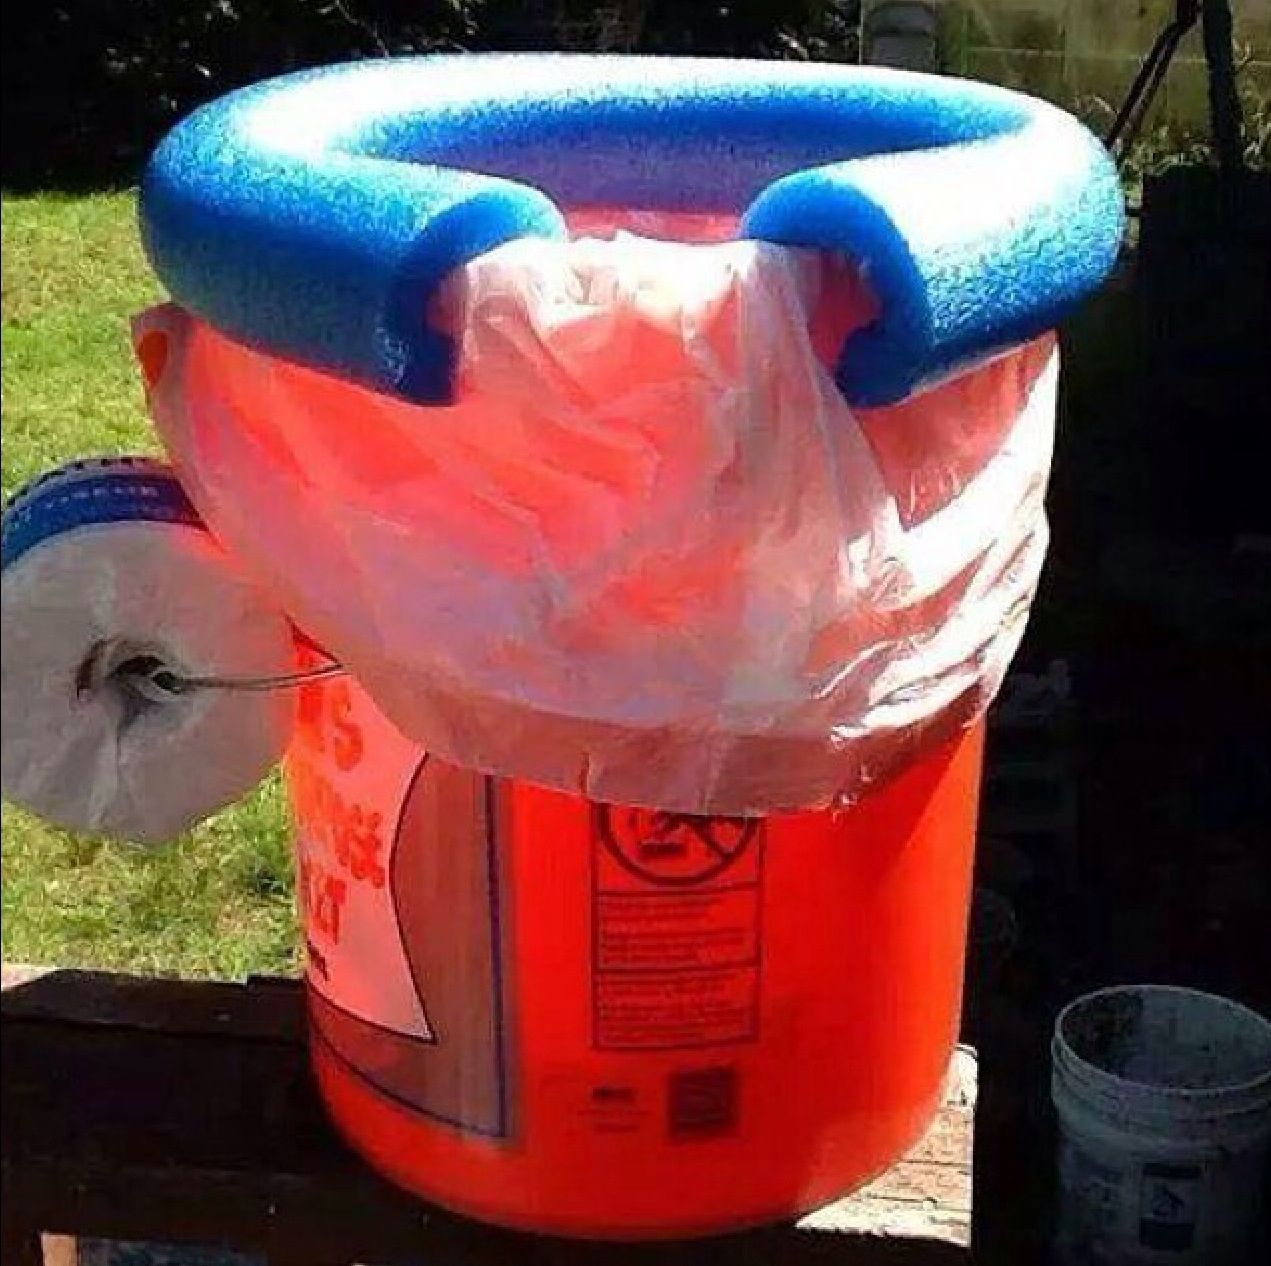 Home Made Portable Toilet Made With A 5 Gallon Bucket A Trash Bag